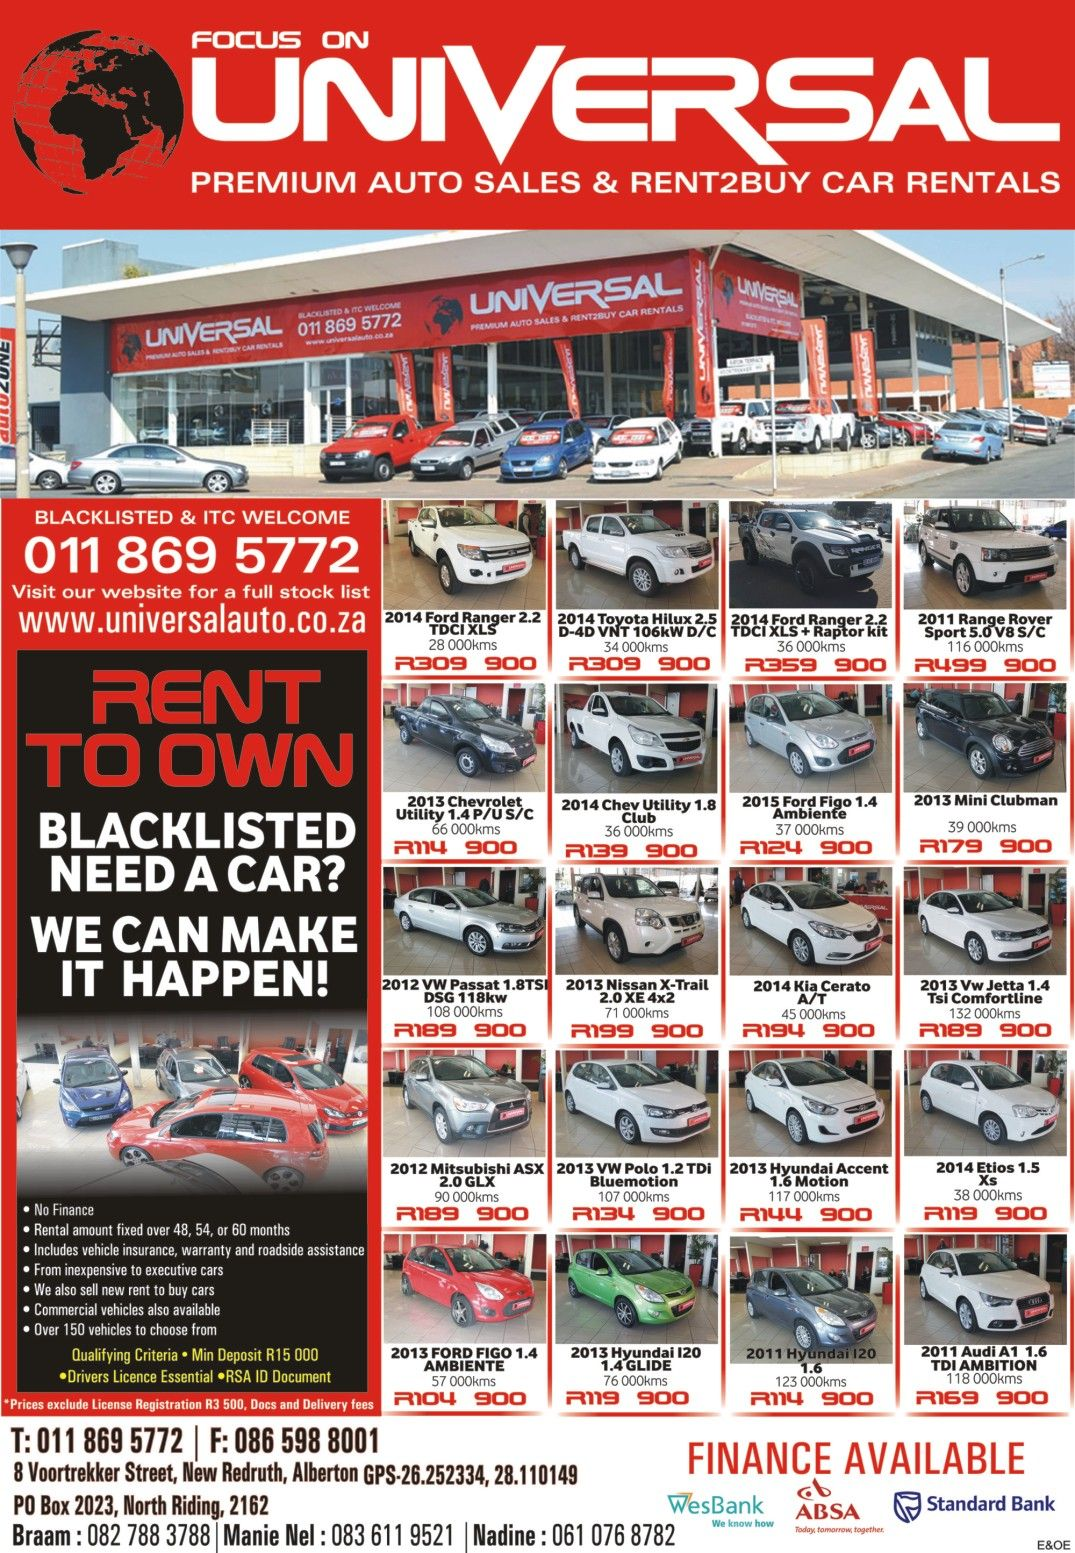 Come View Every Friday Dealers Welcome Universal Auction Every Saturday Starting From 12 Noon Have Any Plans Cars For Sale Car Rental Dream Cars